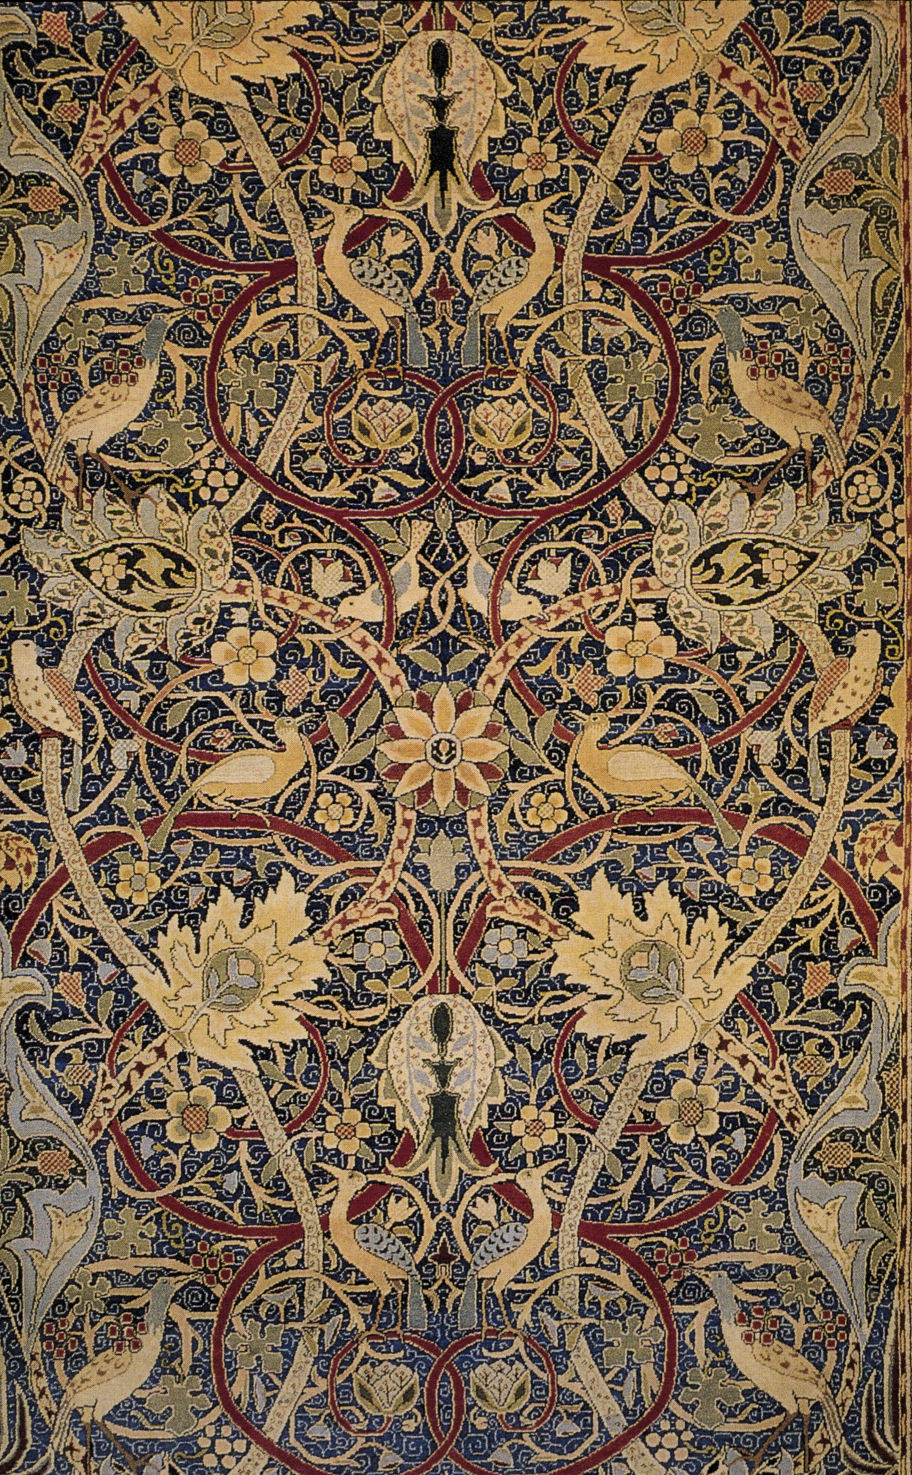 Excerpt of Bullerswood Carpet (1889) by William Morris. I want one of these carpets so badly.